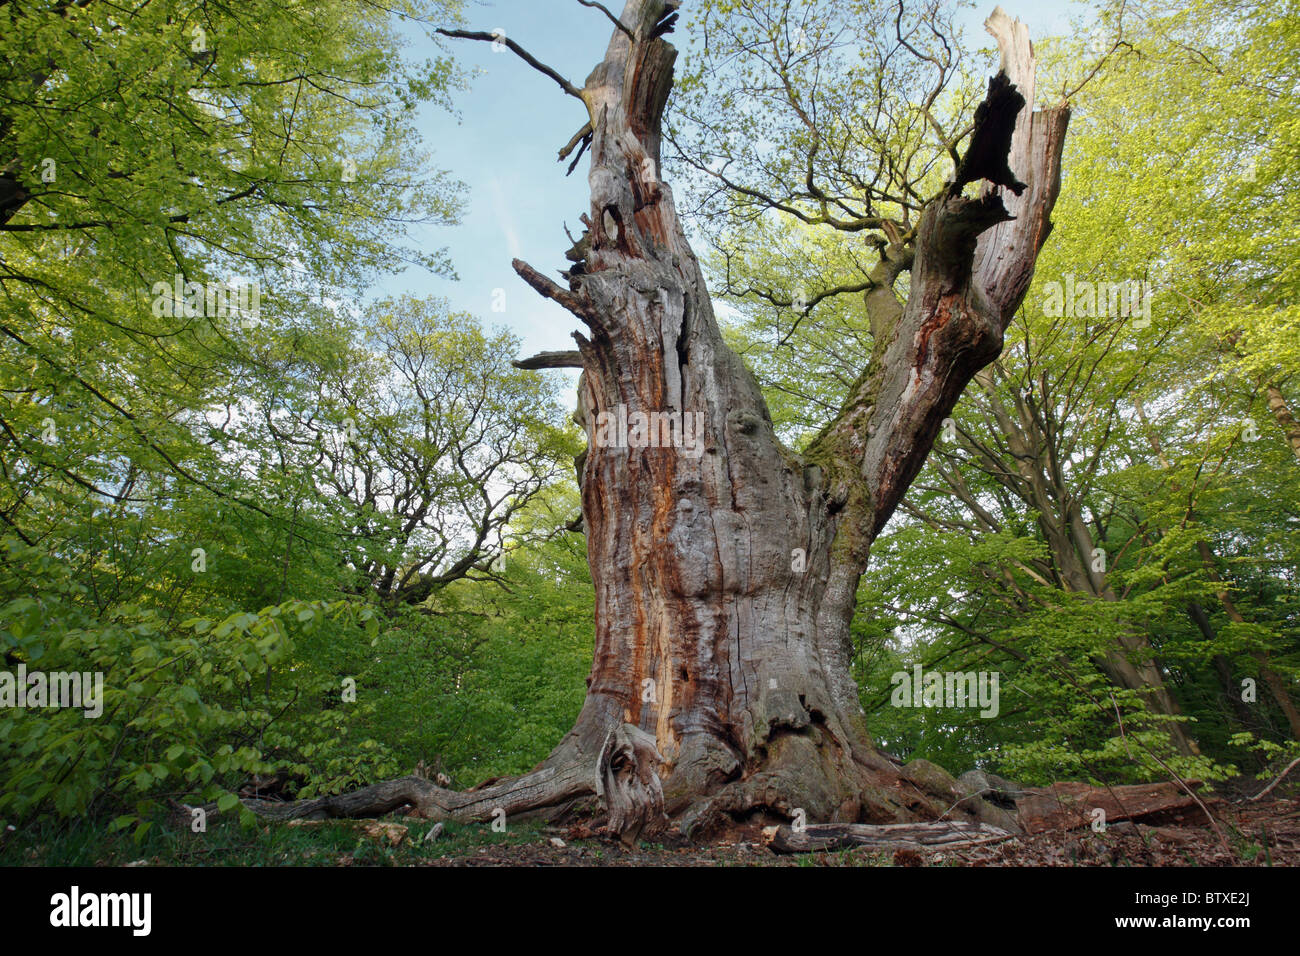 ancient oak tree quercus robur sababurg forest reservation stock photo royalty free image. Black Bedroom Furniture Sets. Home Design Ideas